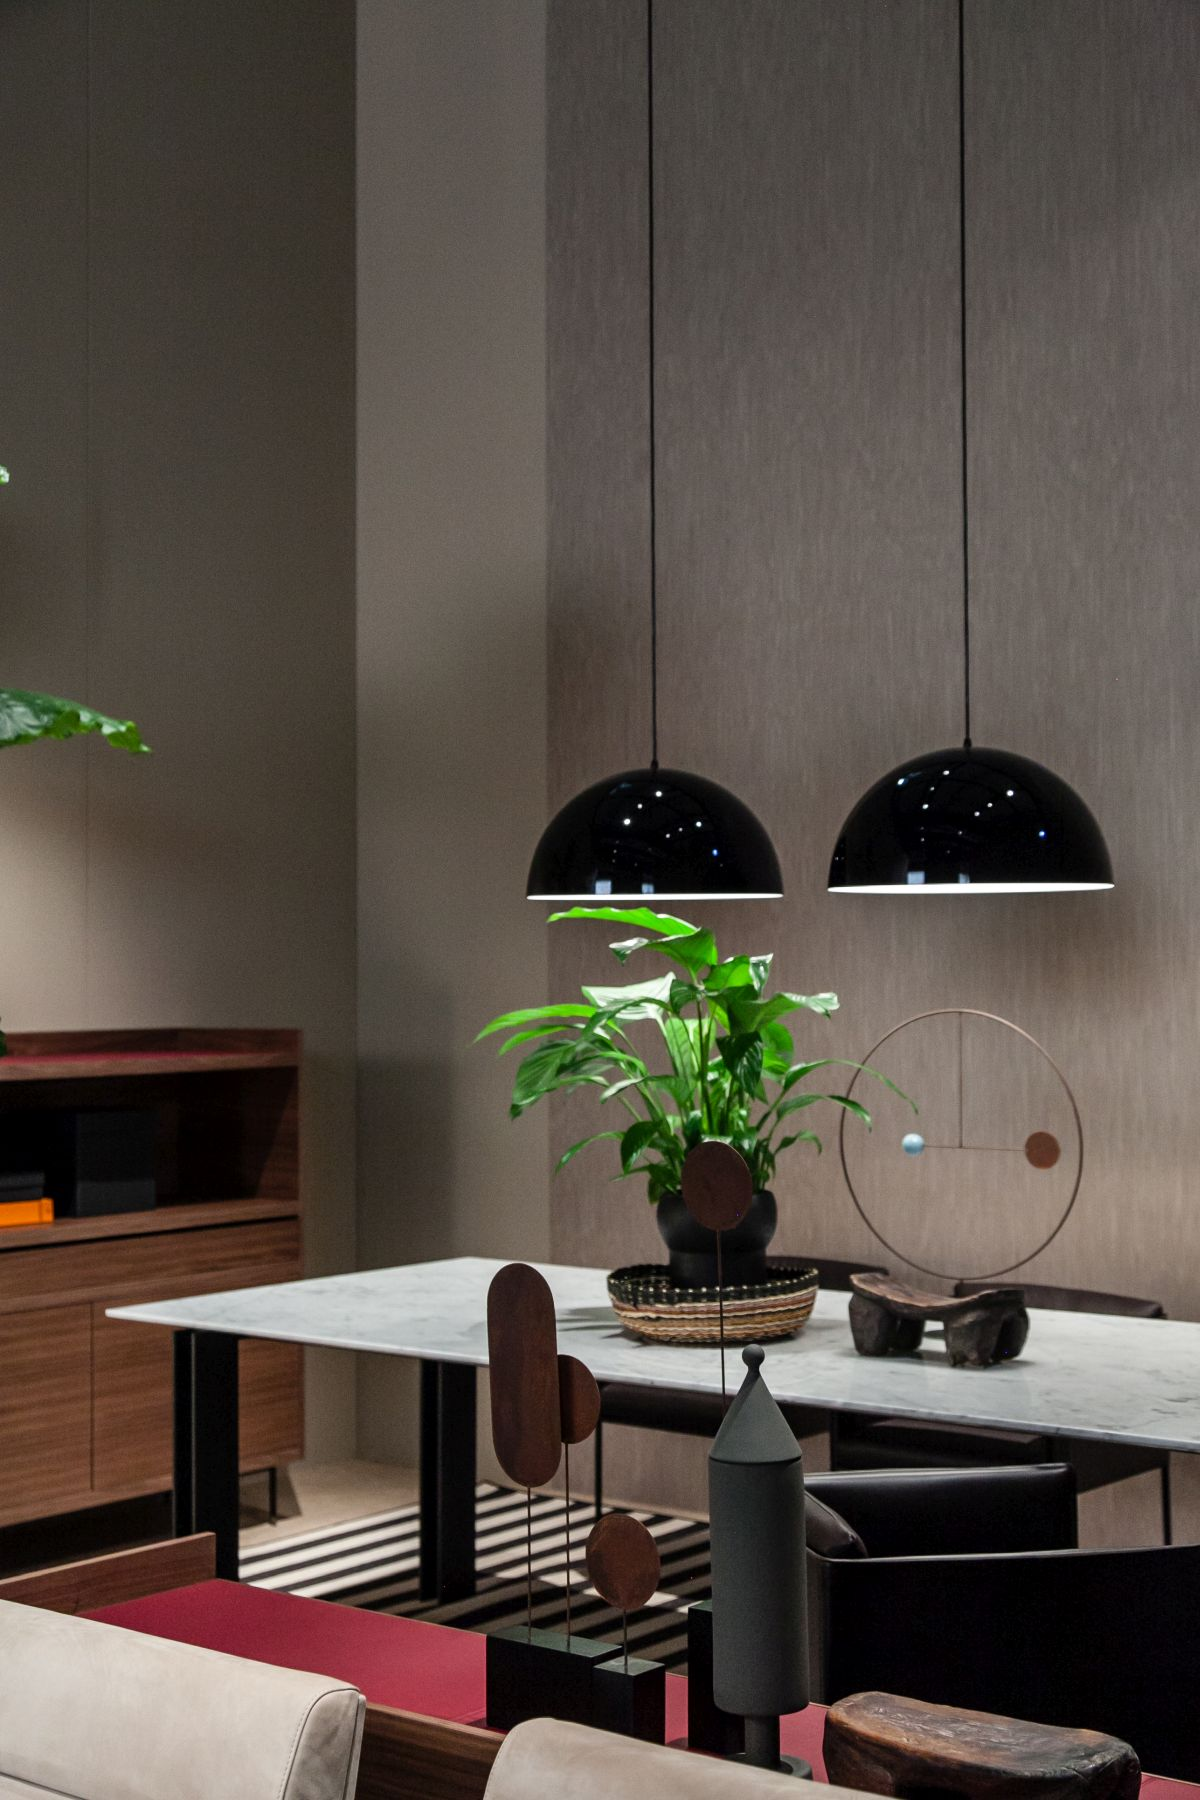 ideas for living room lighting paint 2016 that inspire us to think outside the box pendant lamps above dining table